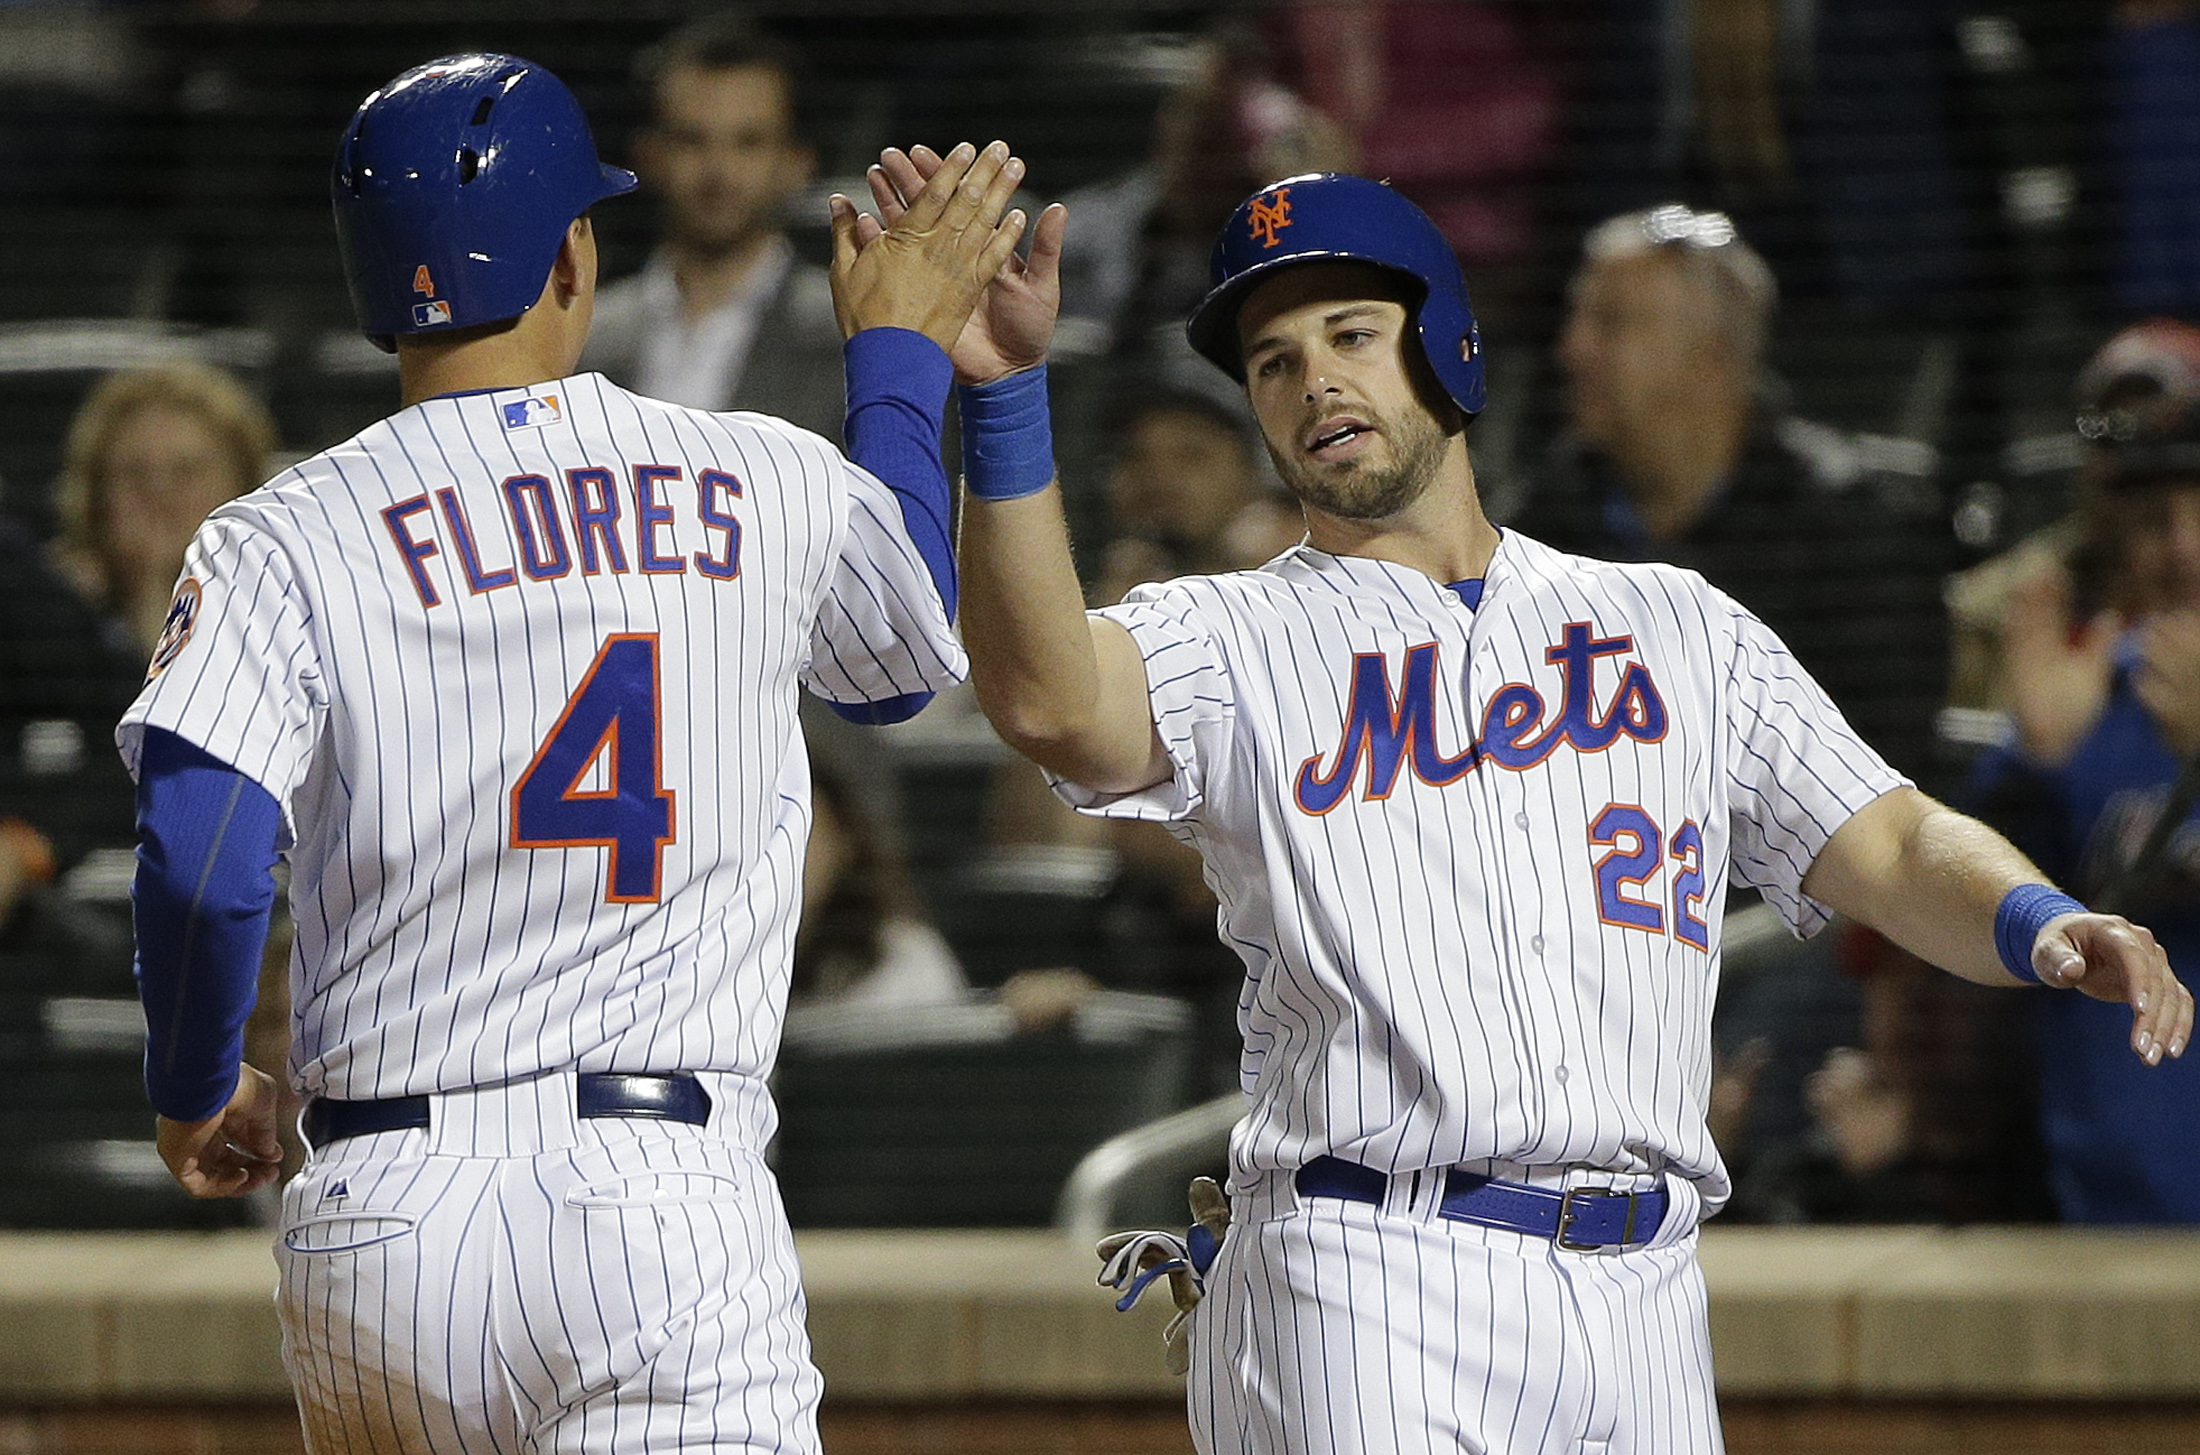 New York Mets' Kevin Plawecki (22) greets Wilmer Flores (4) after the two scored on a hit by Curtis Granderson against the Atlanta Braves in the fifth inning of a baseball game, Tuesday, April 21, 2015, in New York. (AP Photo/Julie Jacobson)